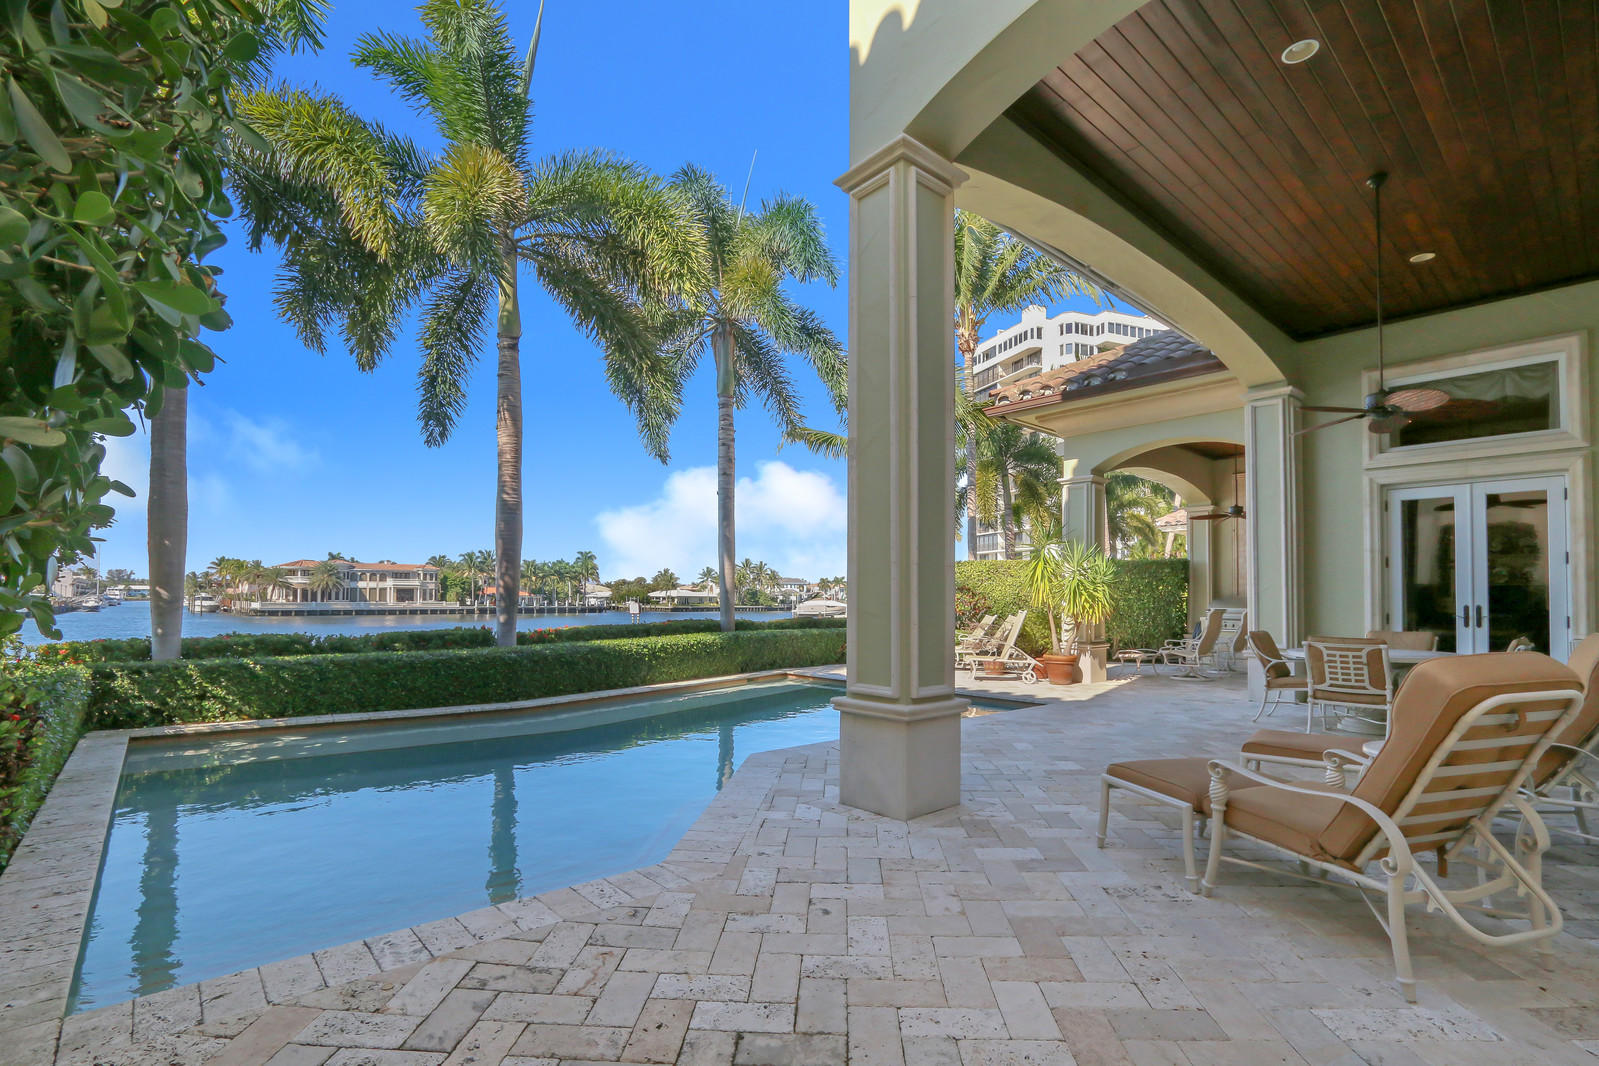 NEWLY PRICED!  BEST VALUE FOR THIS PRISTINE DIRECT INTRACOASTAL AND BEACH ACCESS CUSTOM BUILT ESTATE HOME. Enjoy the incredible views and the ease of carefree living directly on the intracoastal with deeded beach access and a private marina able to dock up to a 50' yacht. Located in the gated seaside enclave of Ocean Cove in prestigious Highland Beach. Stunning custom kitchen designed to excite your culinary senses featuring a center island, Wolf gas cooktop and Subzero refrigerator. The exquisite master suite enjoys spa like dual baths, morning bar, custom walk-in closets, beautiful water vistas and sunset views from your private balcony. Impact doors and windows.   Lushly landscaped patio offers sparkling pool and summer kitchen setting the stage for the ultimate seaside lifestyle. Ocean Cove is perfectly located in Highland Beach and positioned on a 10.5 acre nature preserve. With just 22 European designed estate homes and only 5 waterfront lots this direct intracoastal residence is a rare offering.   Boasting over 5500 square of living space this home features polished Egyptian limestone floors, soaring ceilings, artisan millwork and dramatic wrought iron staircase. Three car garage with Gladiator tile floors, custom built-ins and a workbench.   The resort style backyard features a generous patio, private sparkling pool with swim out shelf and two retractable remote controlled exterior awnings. Summer kitchen complete with BBQ, sink and stainless door storage. A perfect space for added outdoor living, dining alfresco and entertaining.   Custom built entertainment center in great room plus surround sound. Designer Crystal interior lighting. Custom window treatments and painted plantation shutters, extensive exterior precast trim, decorative ceiling moldings and trim throughout and stairway niche finished with antiqued sandblasted mirror. Cut glass wine room door. Stained glass windows in dining room and original oil painted ceiling medallion. Custom closet storag